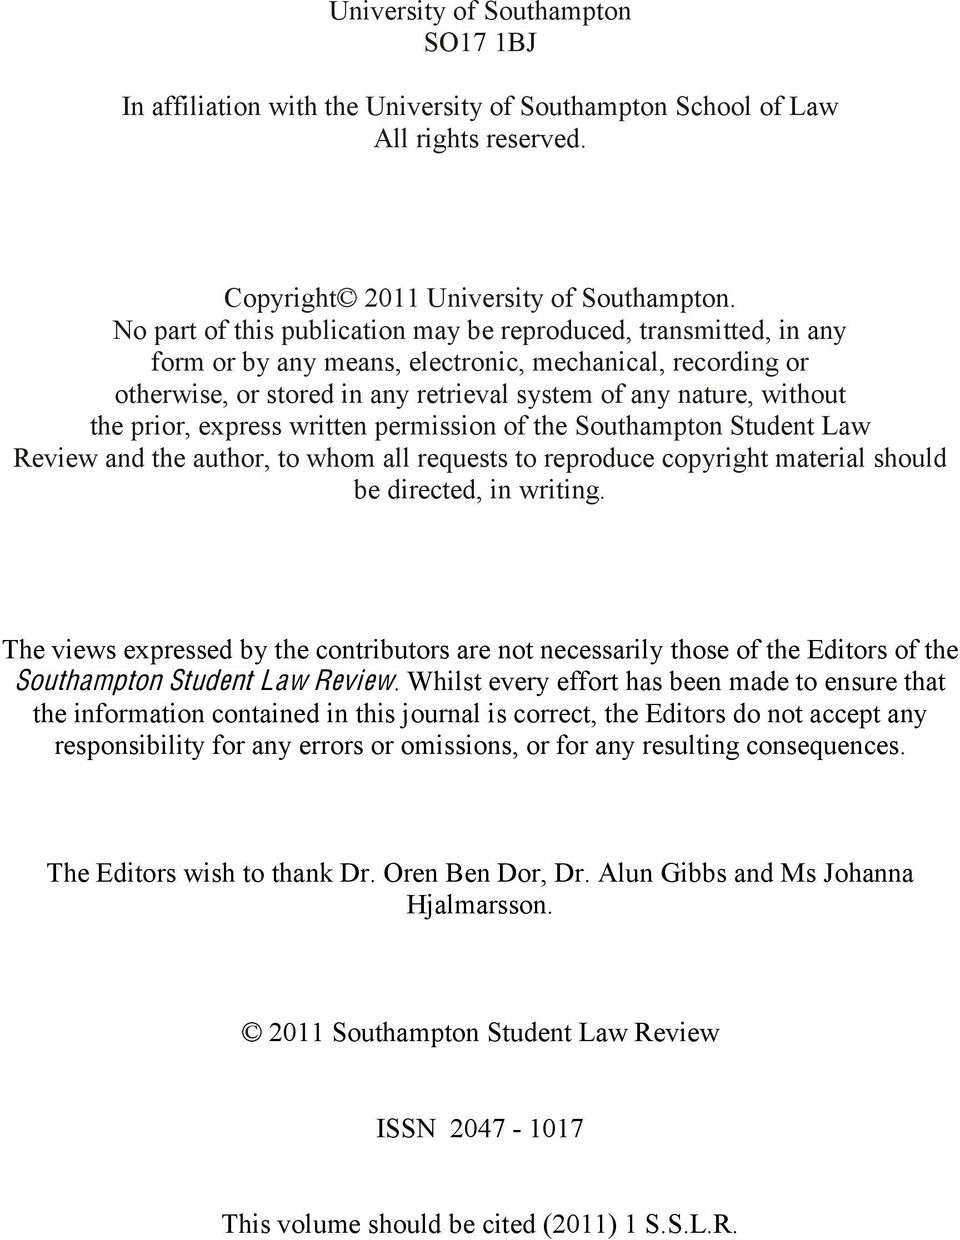 prior, express written permission of the Southampton Student Law Review and the author, to whom all requests to reproduce copyright material should be directed, in writing.